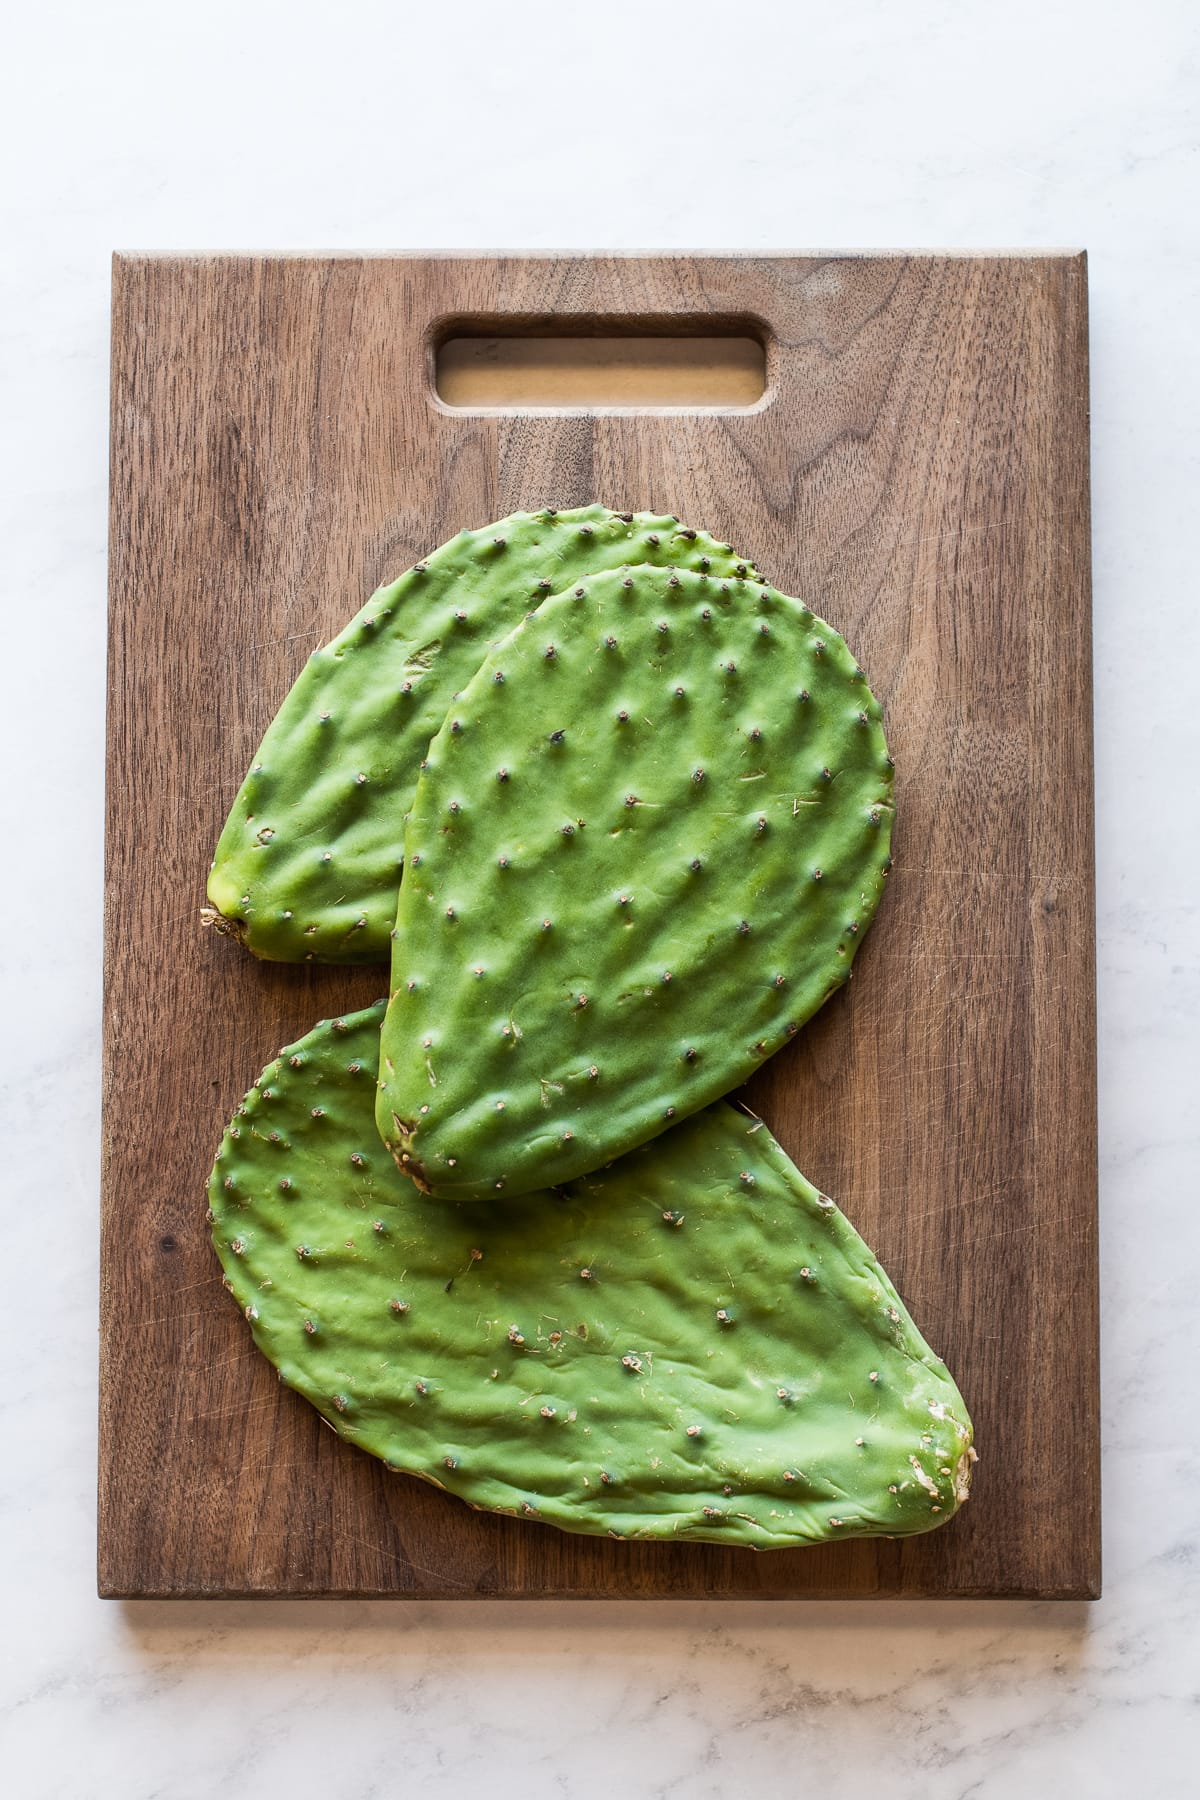 Nopales (cactus paddles) on a cutting board